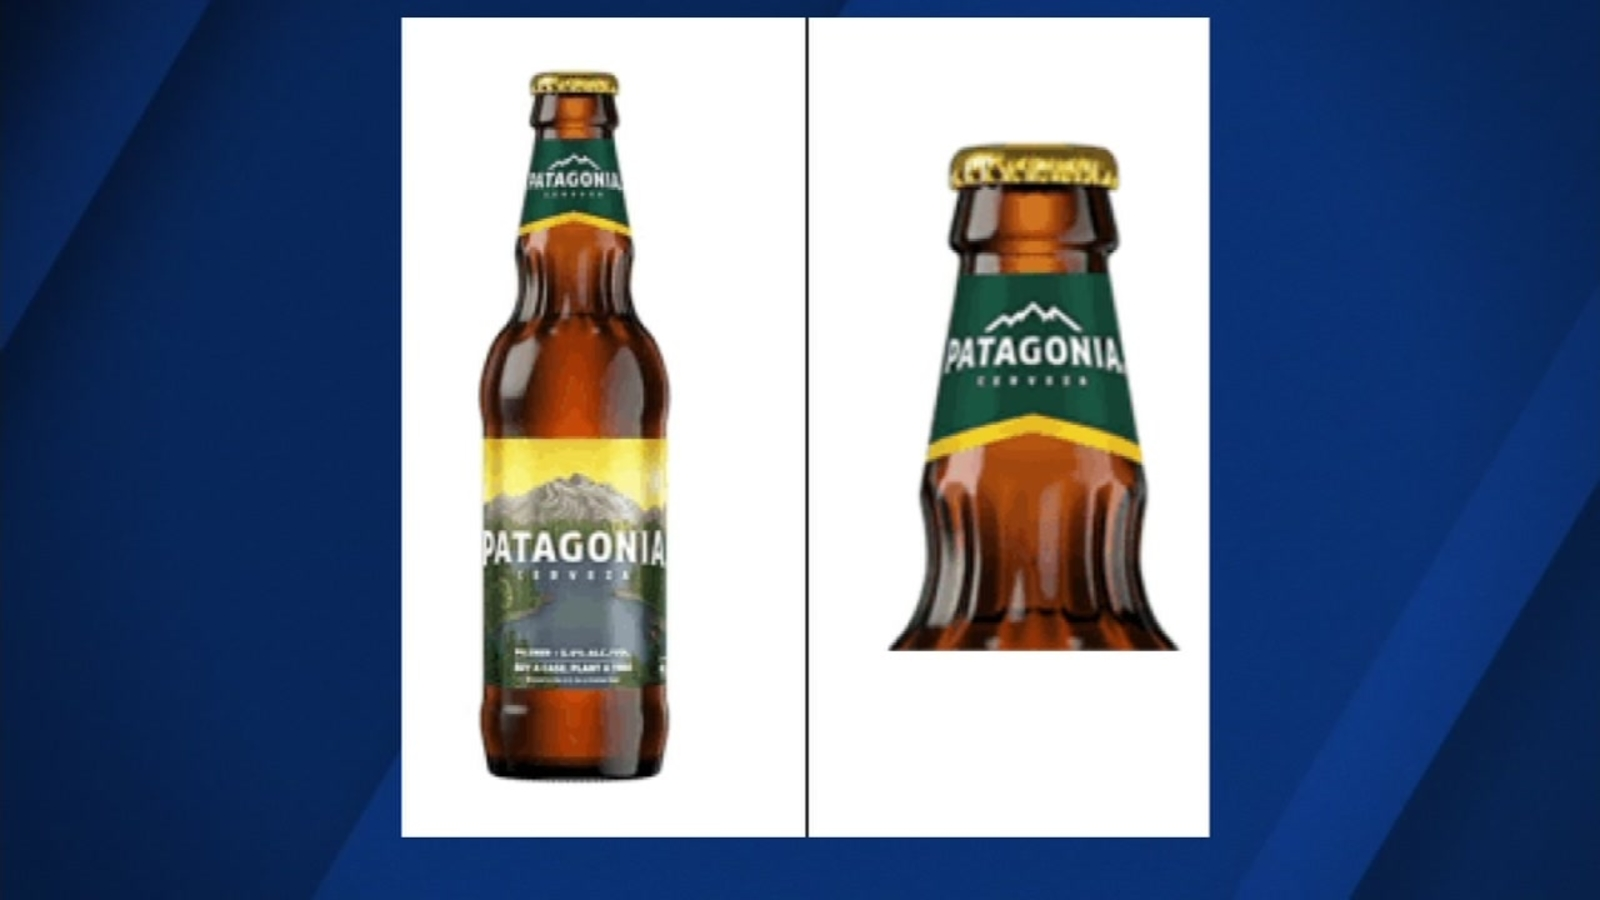 Clothing maker Patagonia is suing Anheuser-Busch over a beer for patent infringement